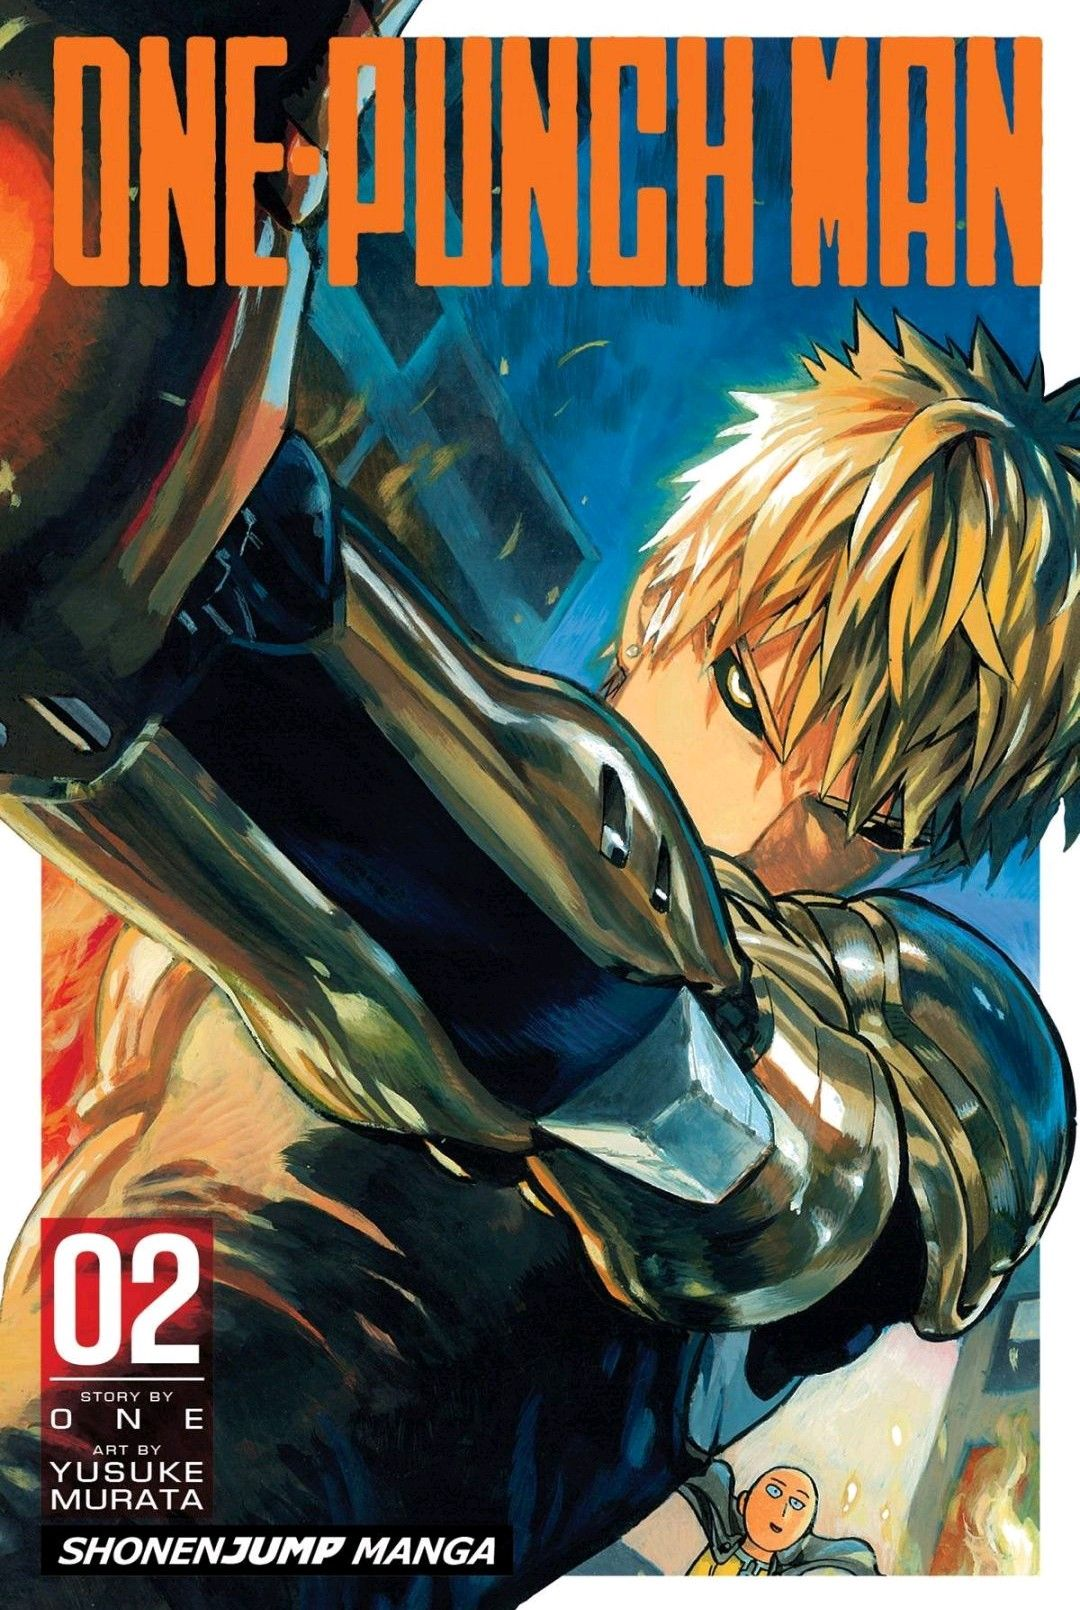 Manga Cover Mangá one punch man, Soco e One punch man